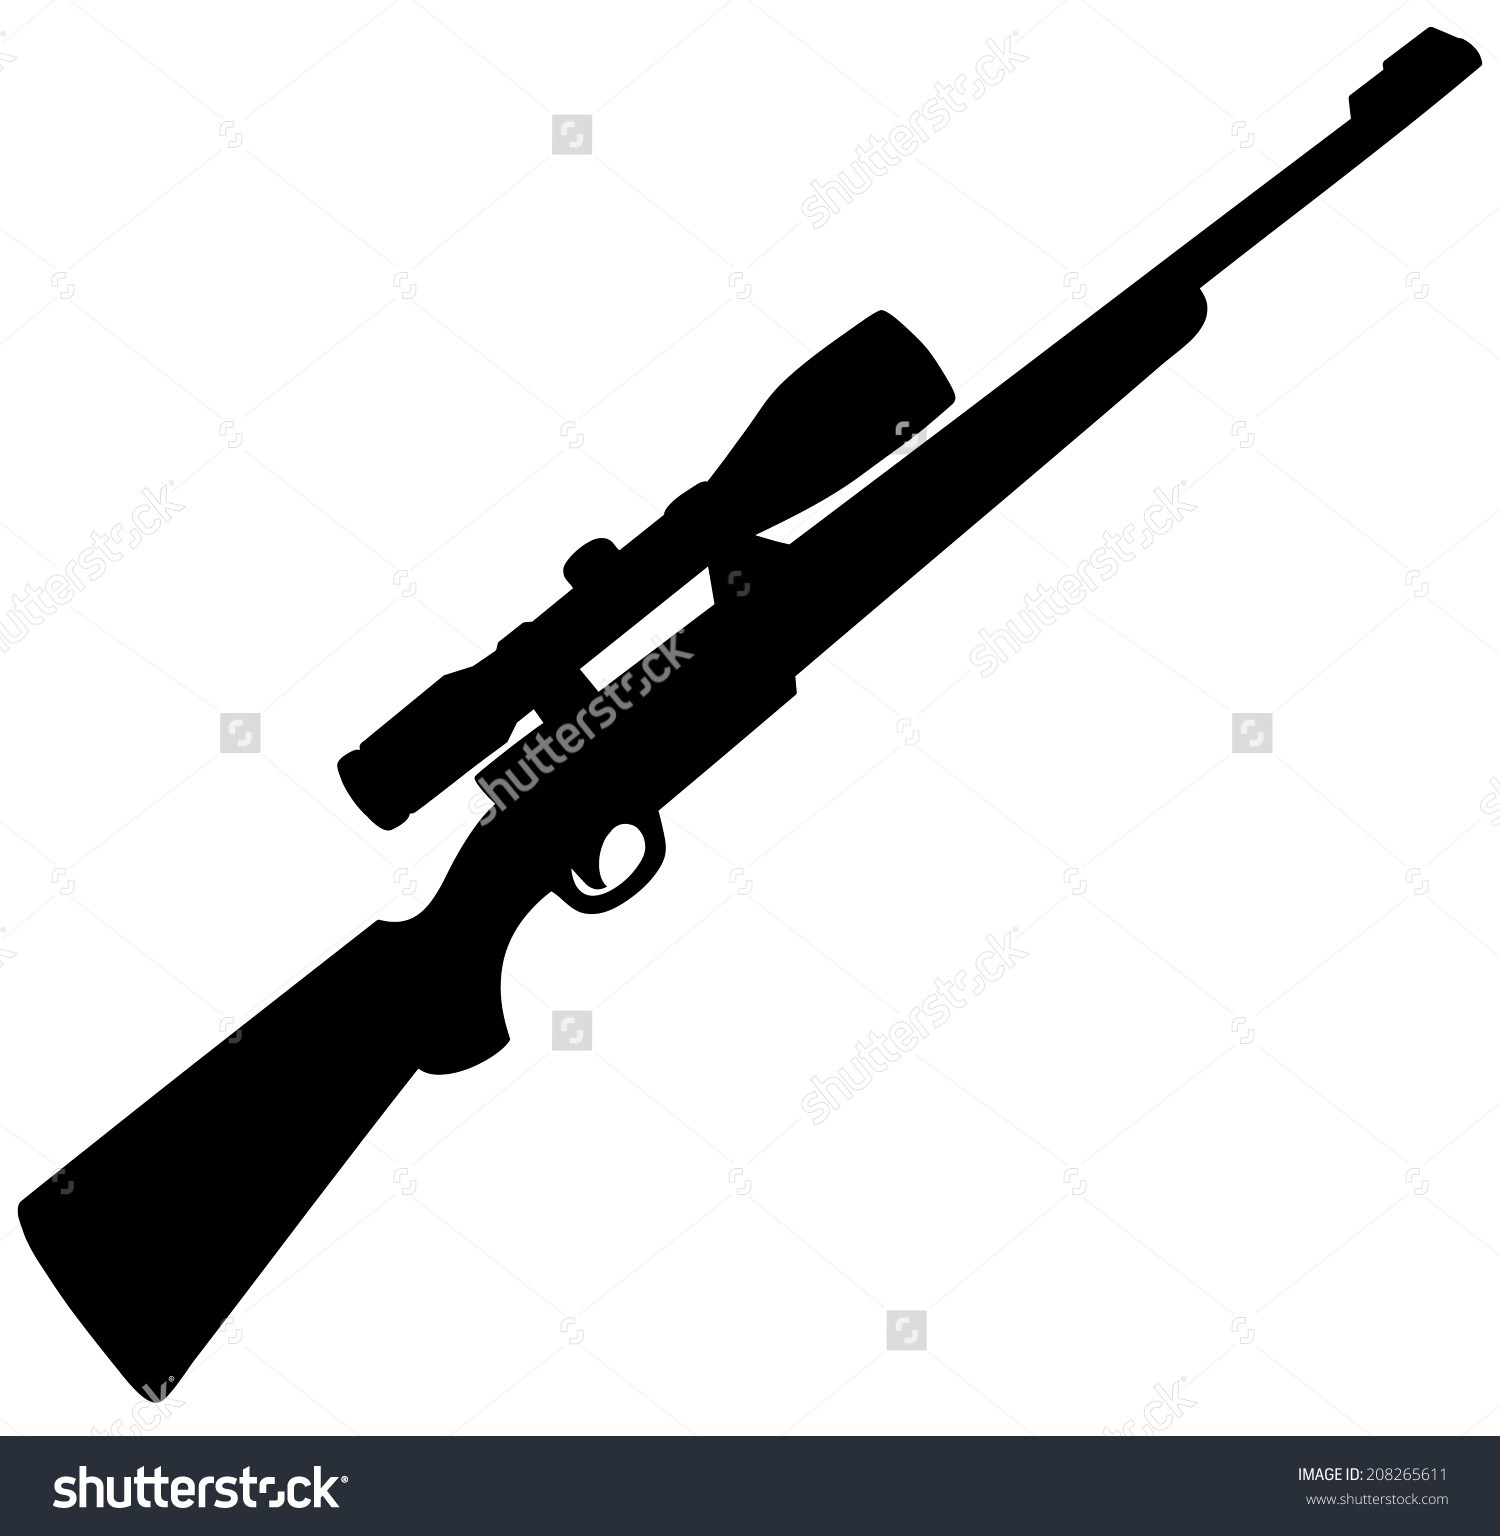 Rifle clipart black and white 6 » Clipart Portal.